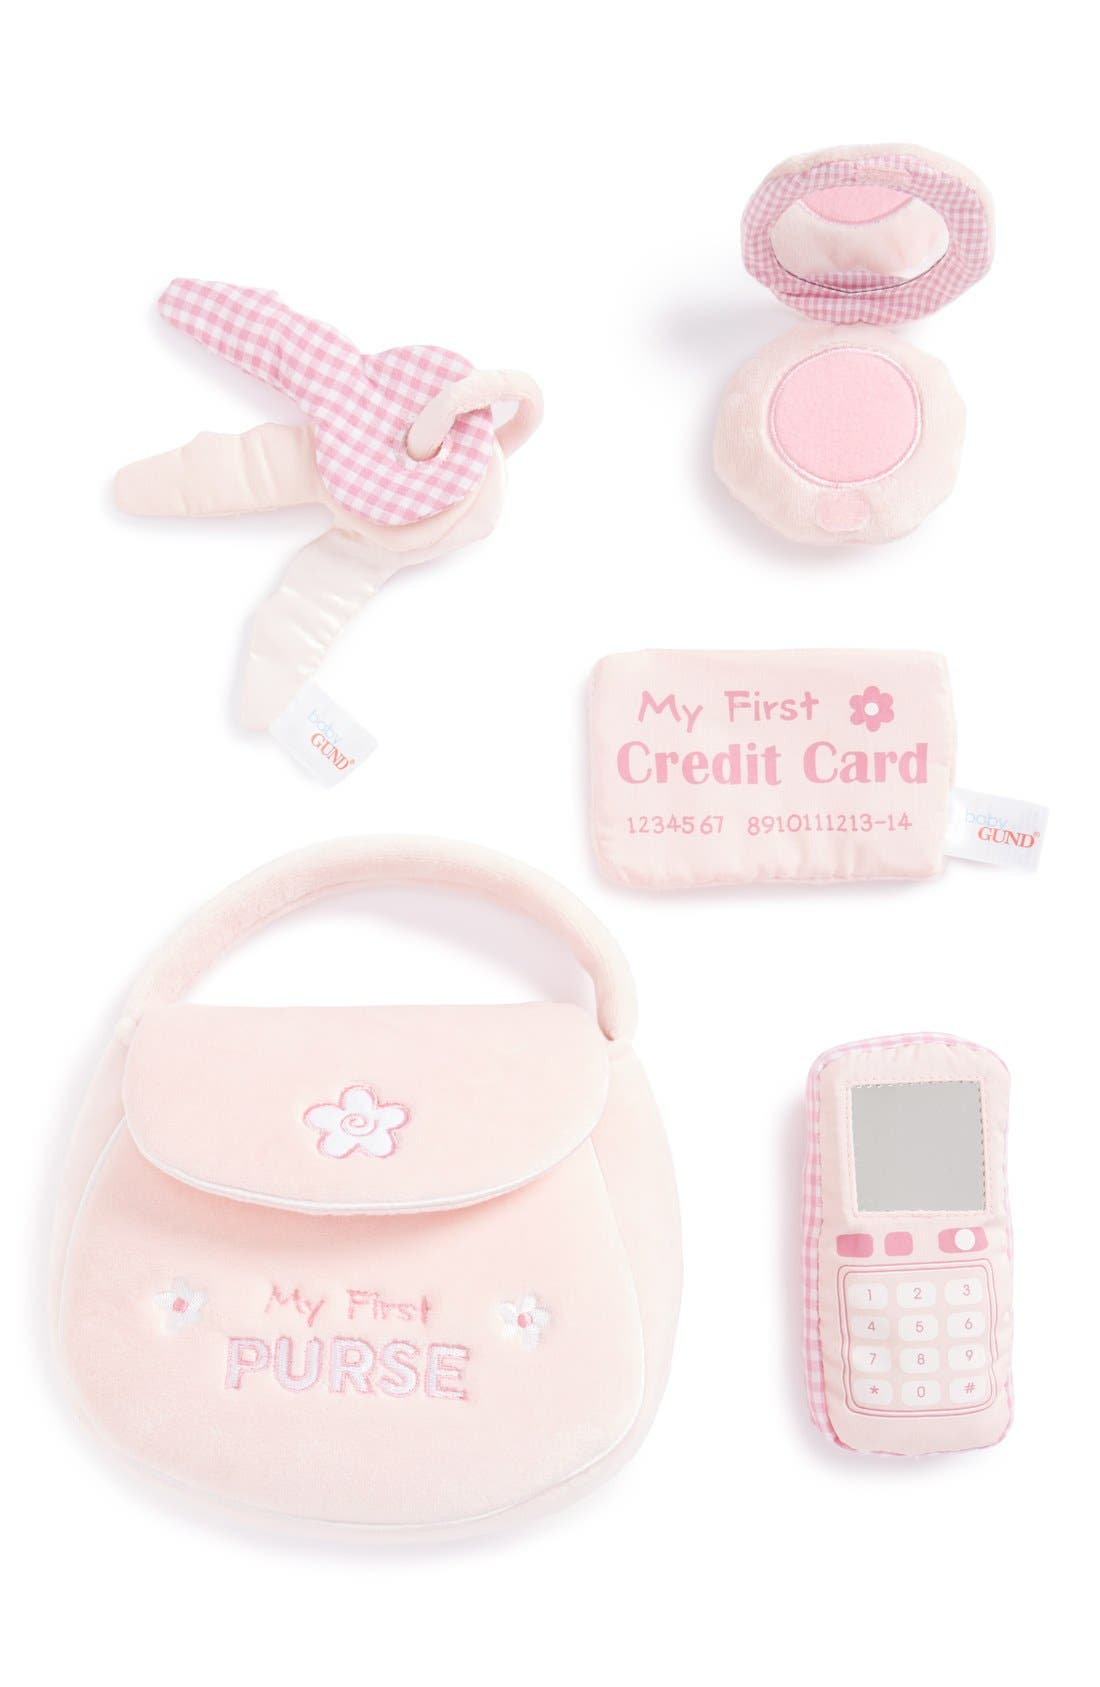 Baby Gund 'My First Purse' Play Set,                         Main,                         color, 650